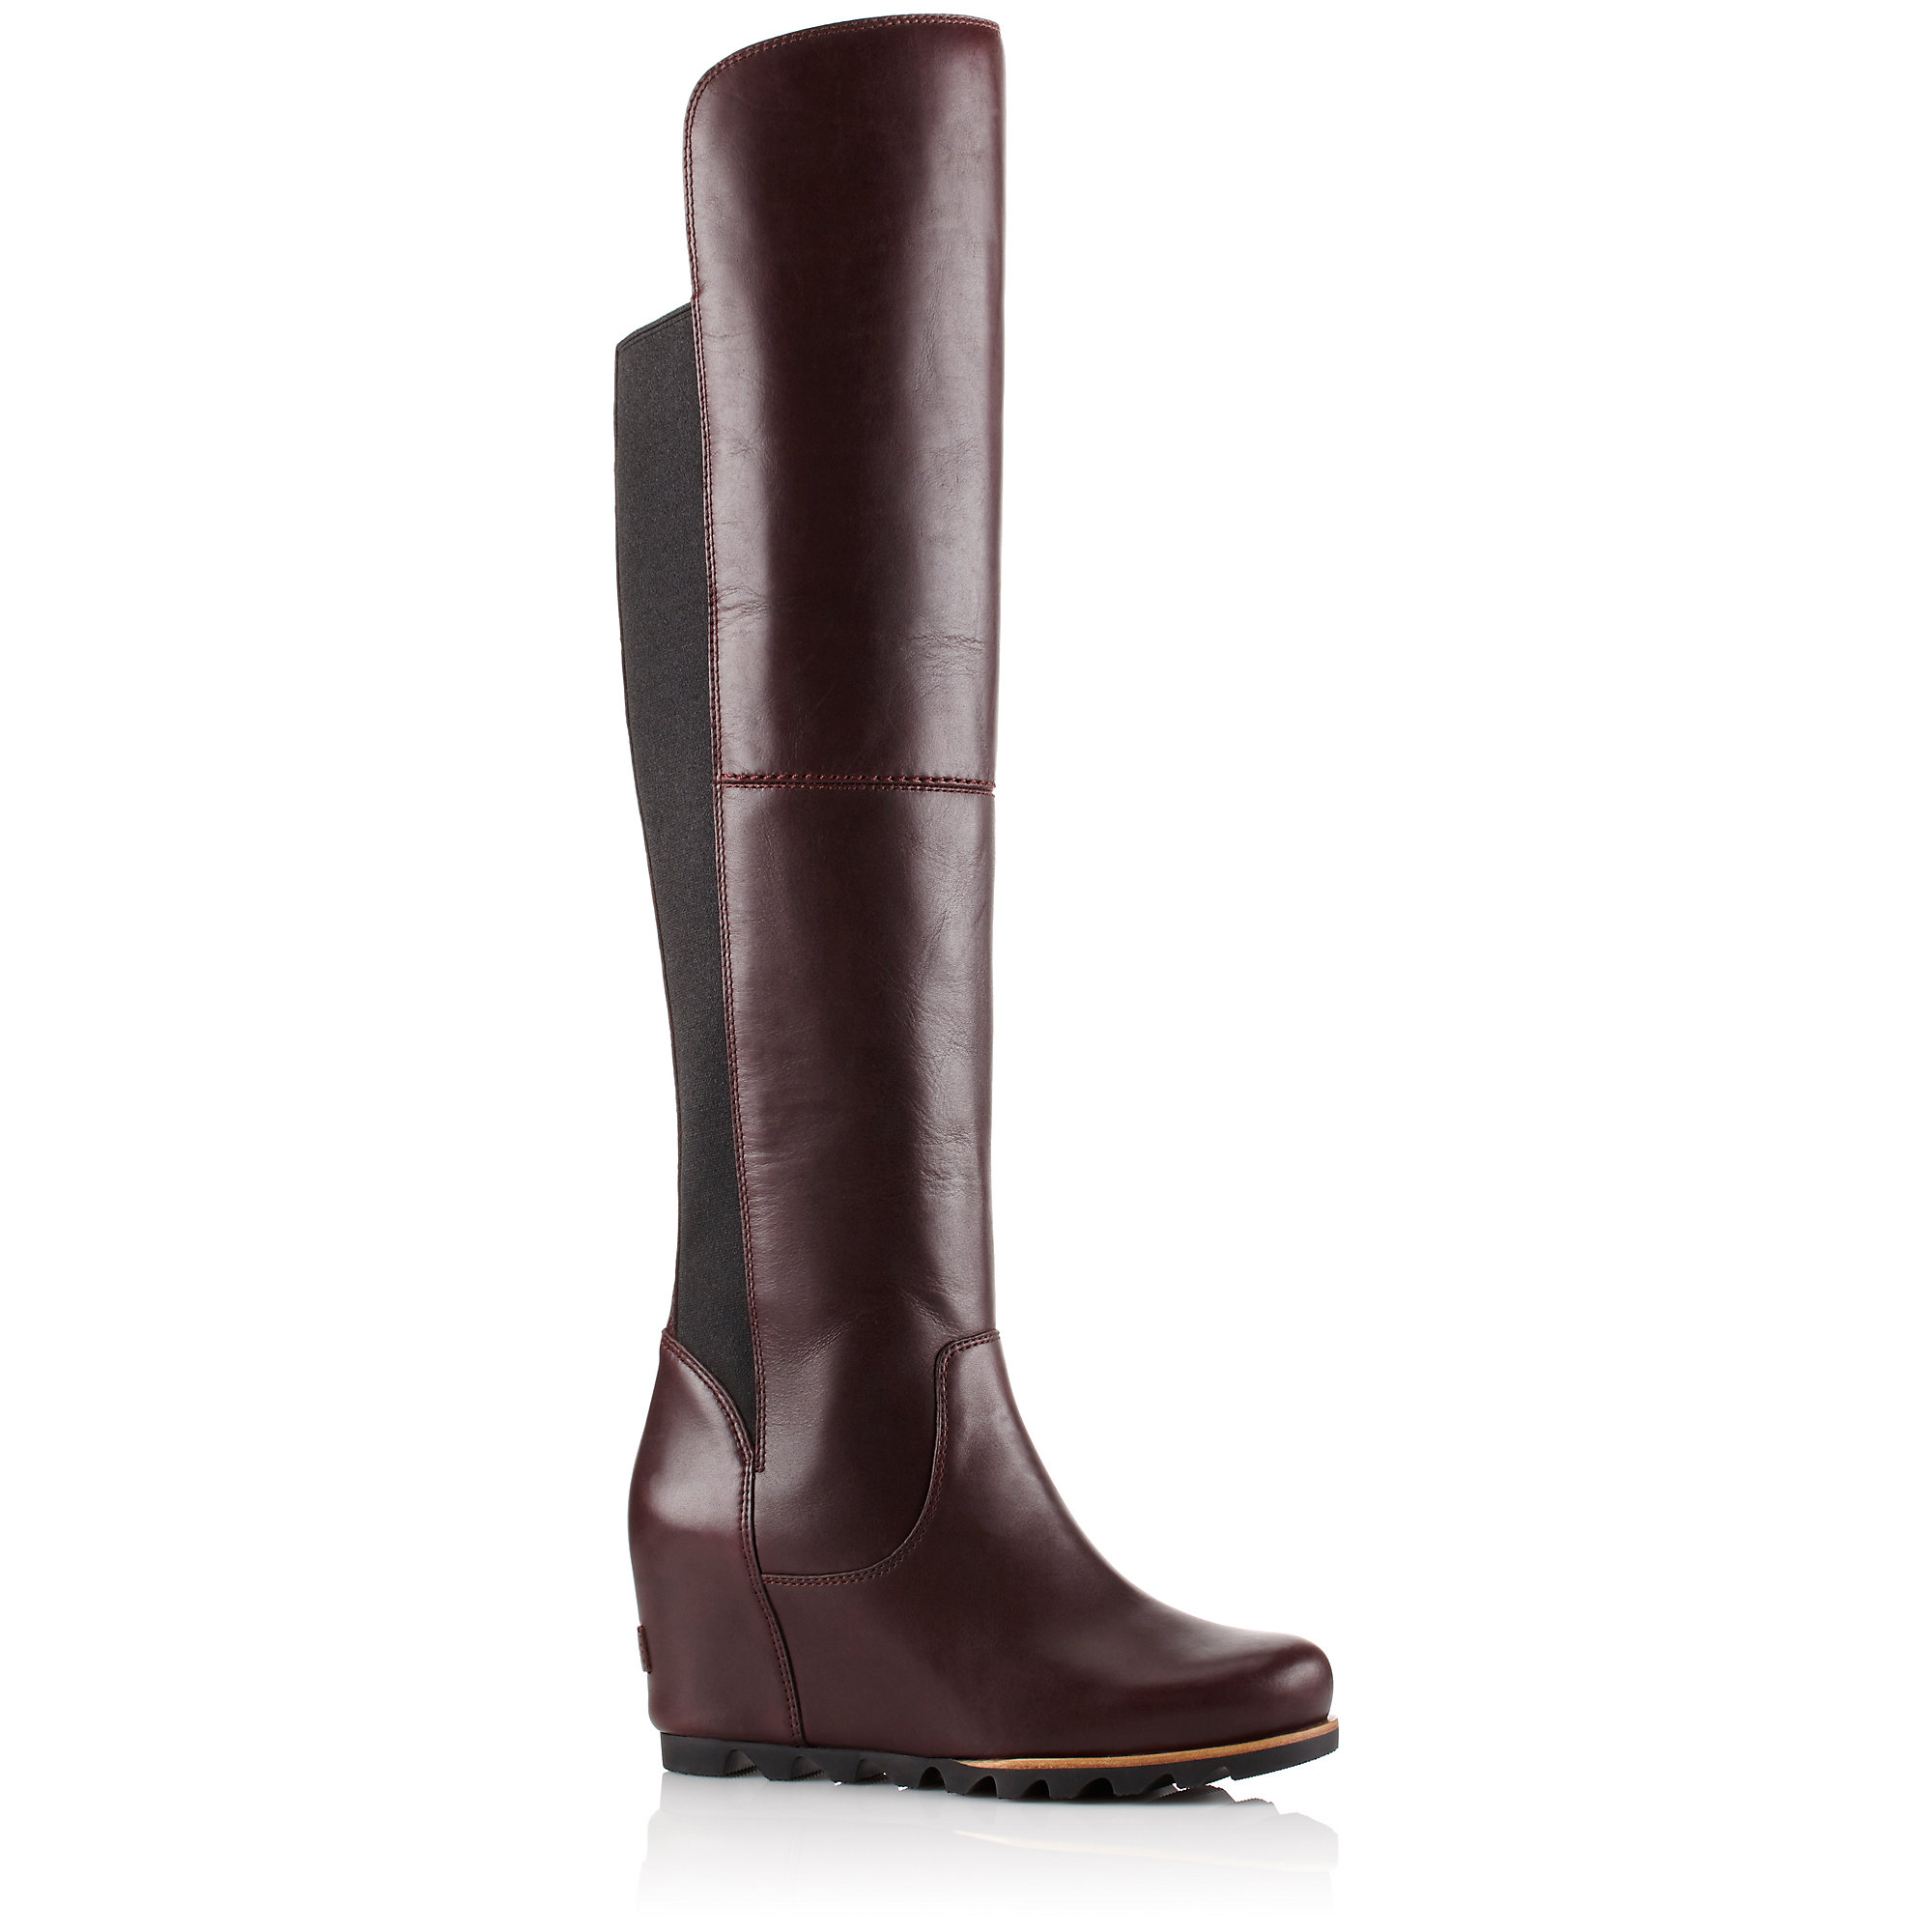 Sorel FIONA Over-The-Knee LUX BOOTS